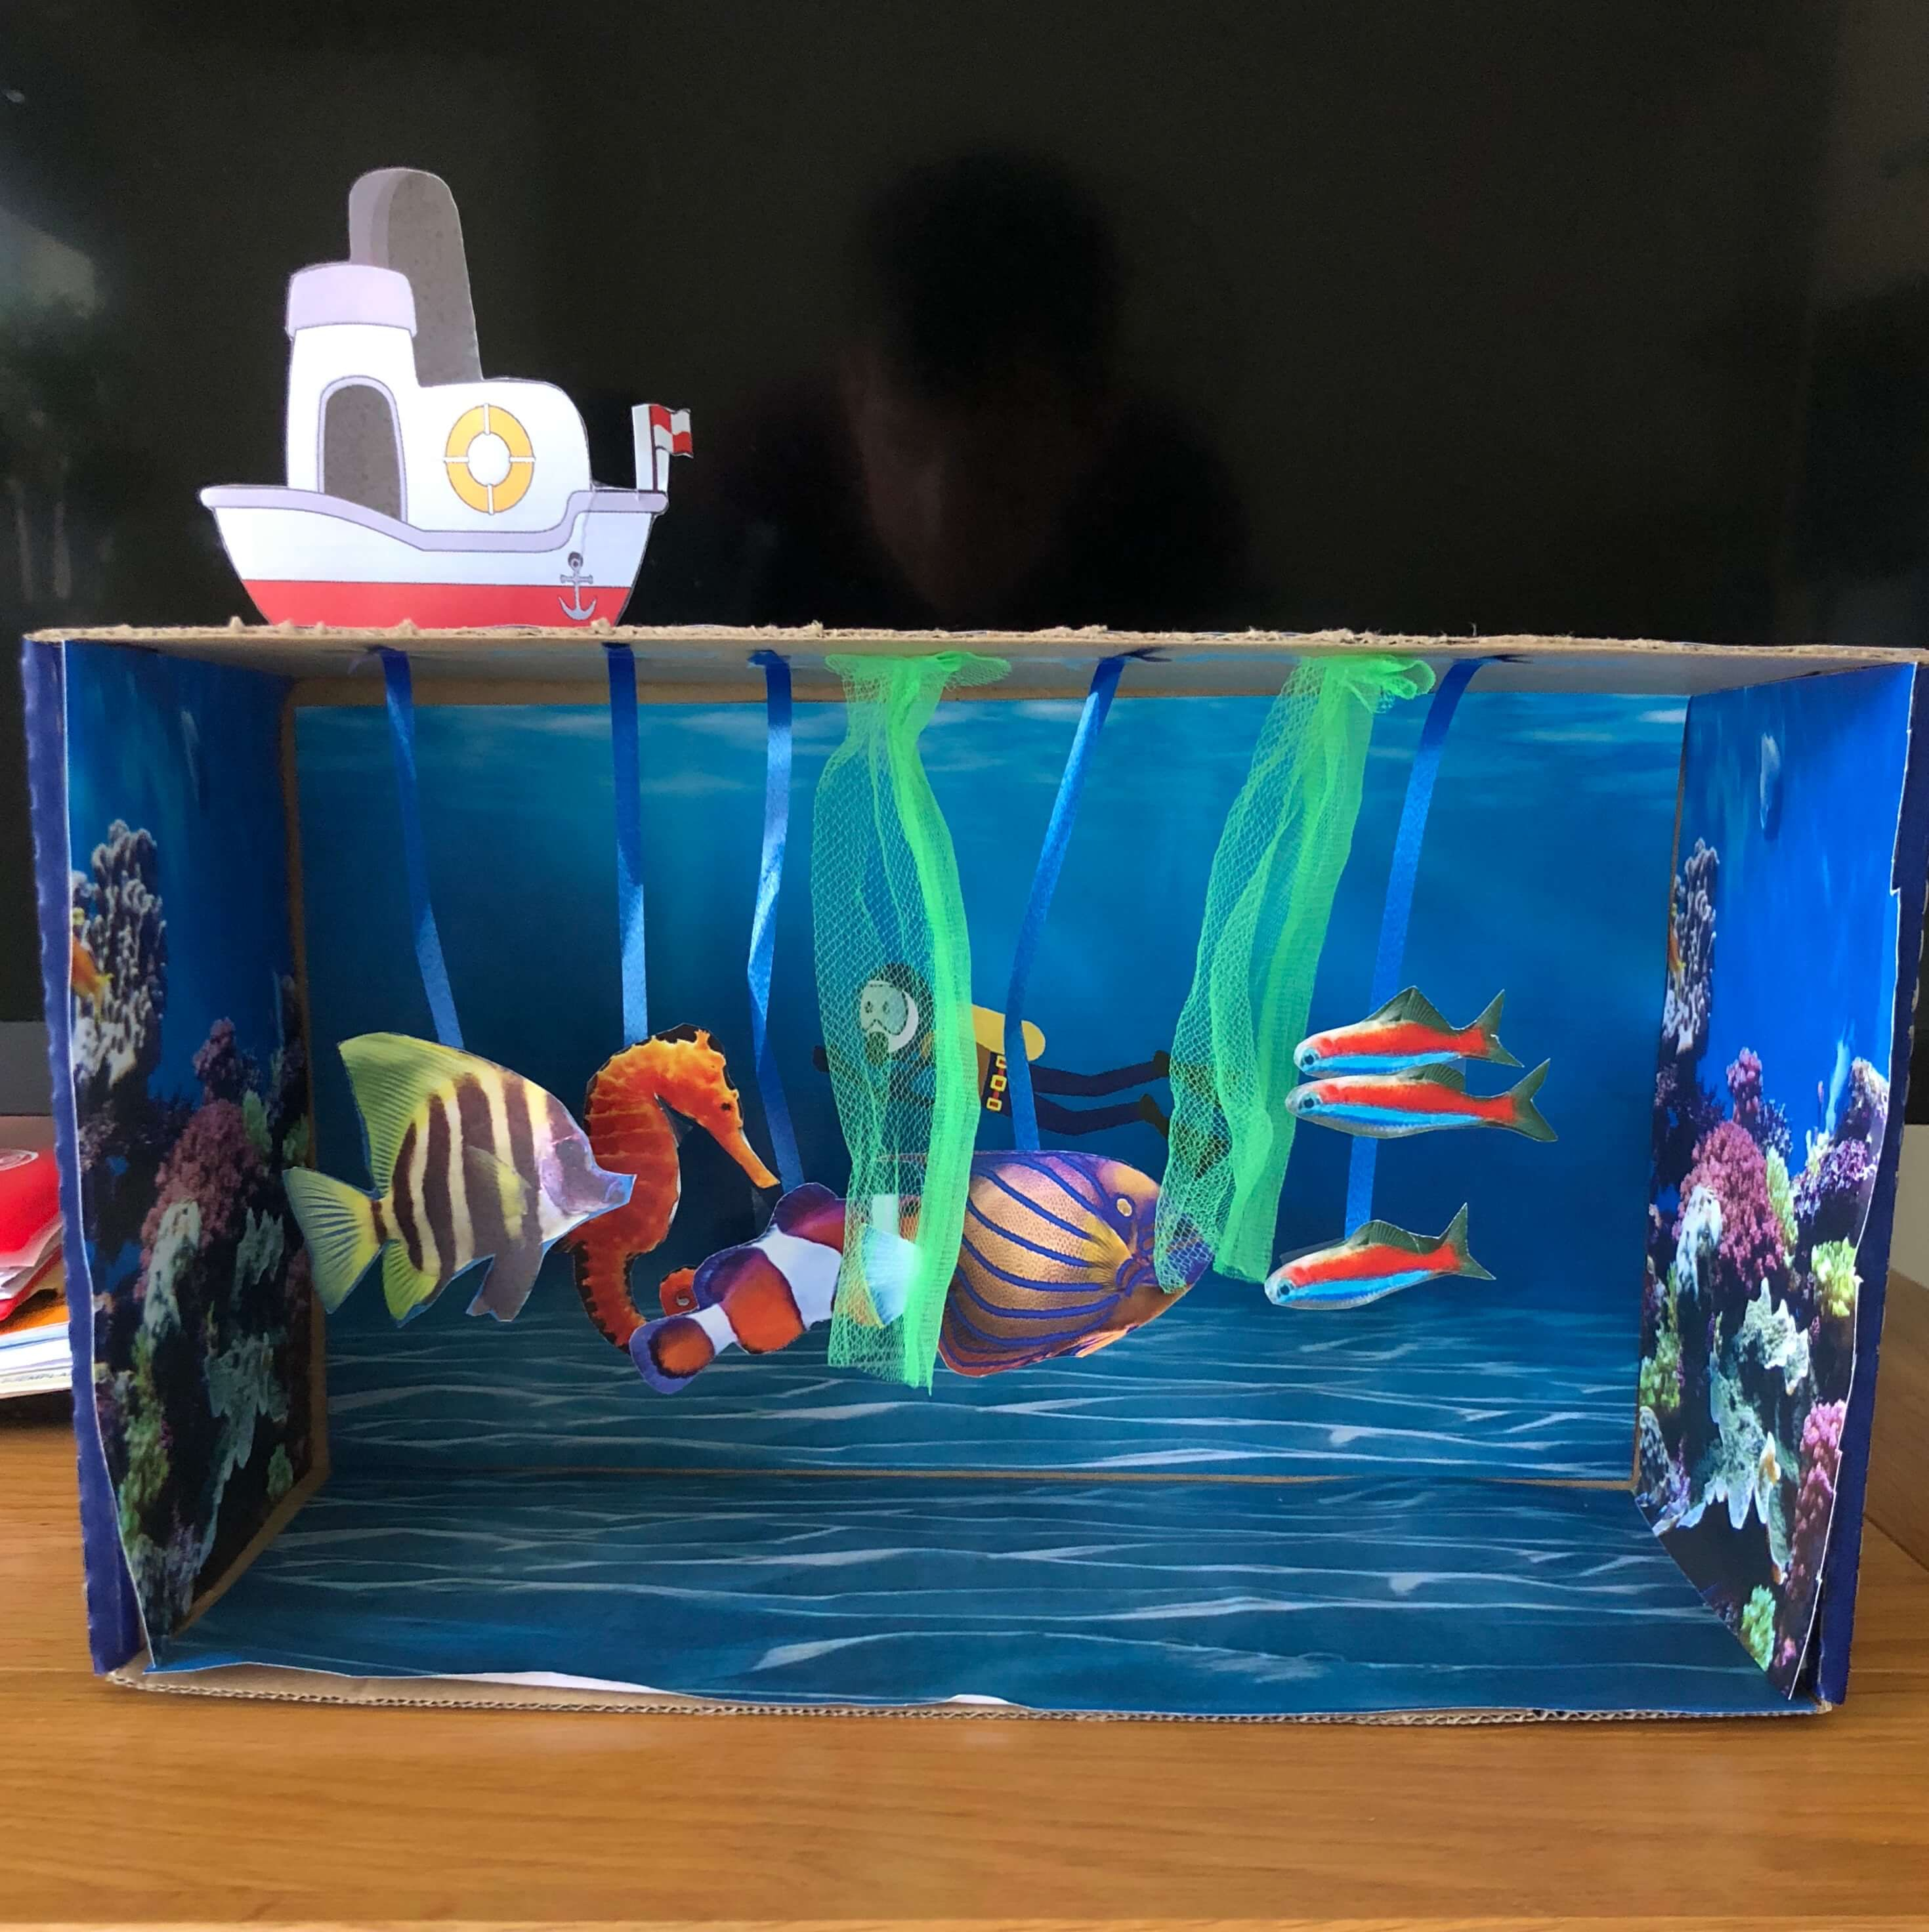 an aquarium which is just bits of paper and ribbon stuck in a shoebox